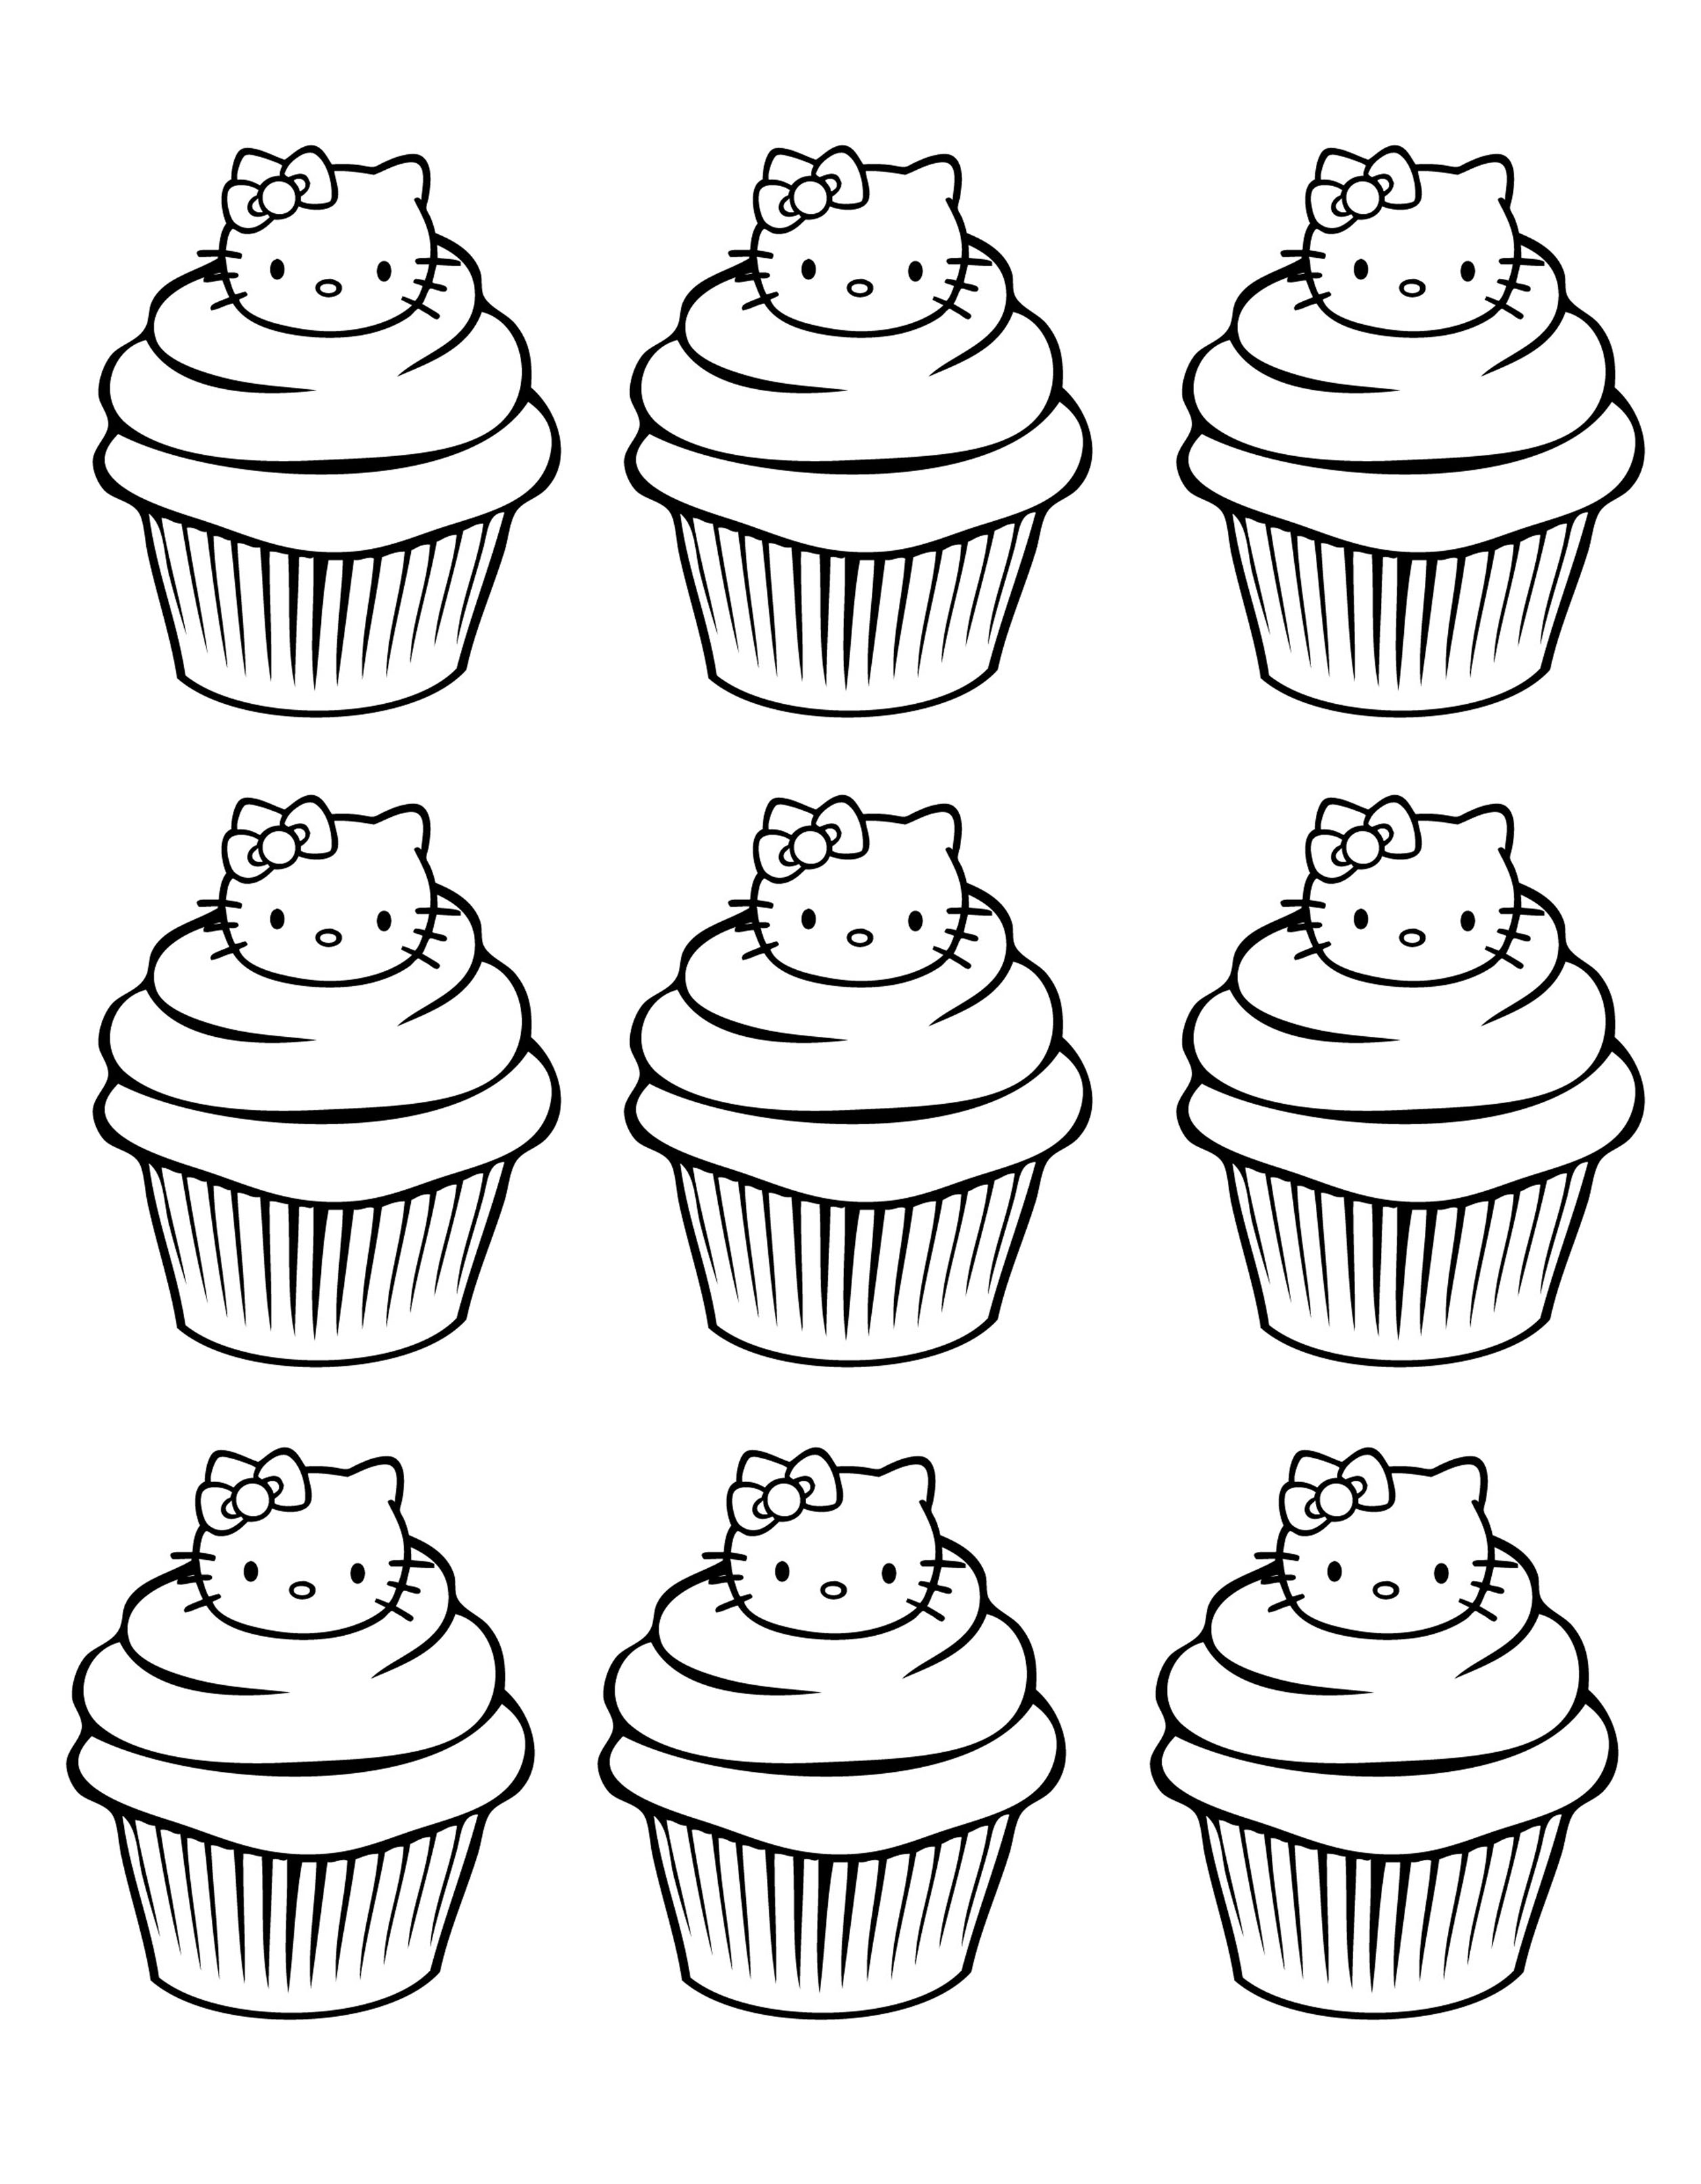 Cupcakes Hello Kitty Simple Cupcakes And Cakes Coloring Pages